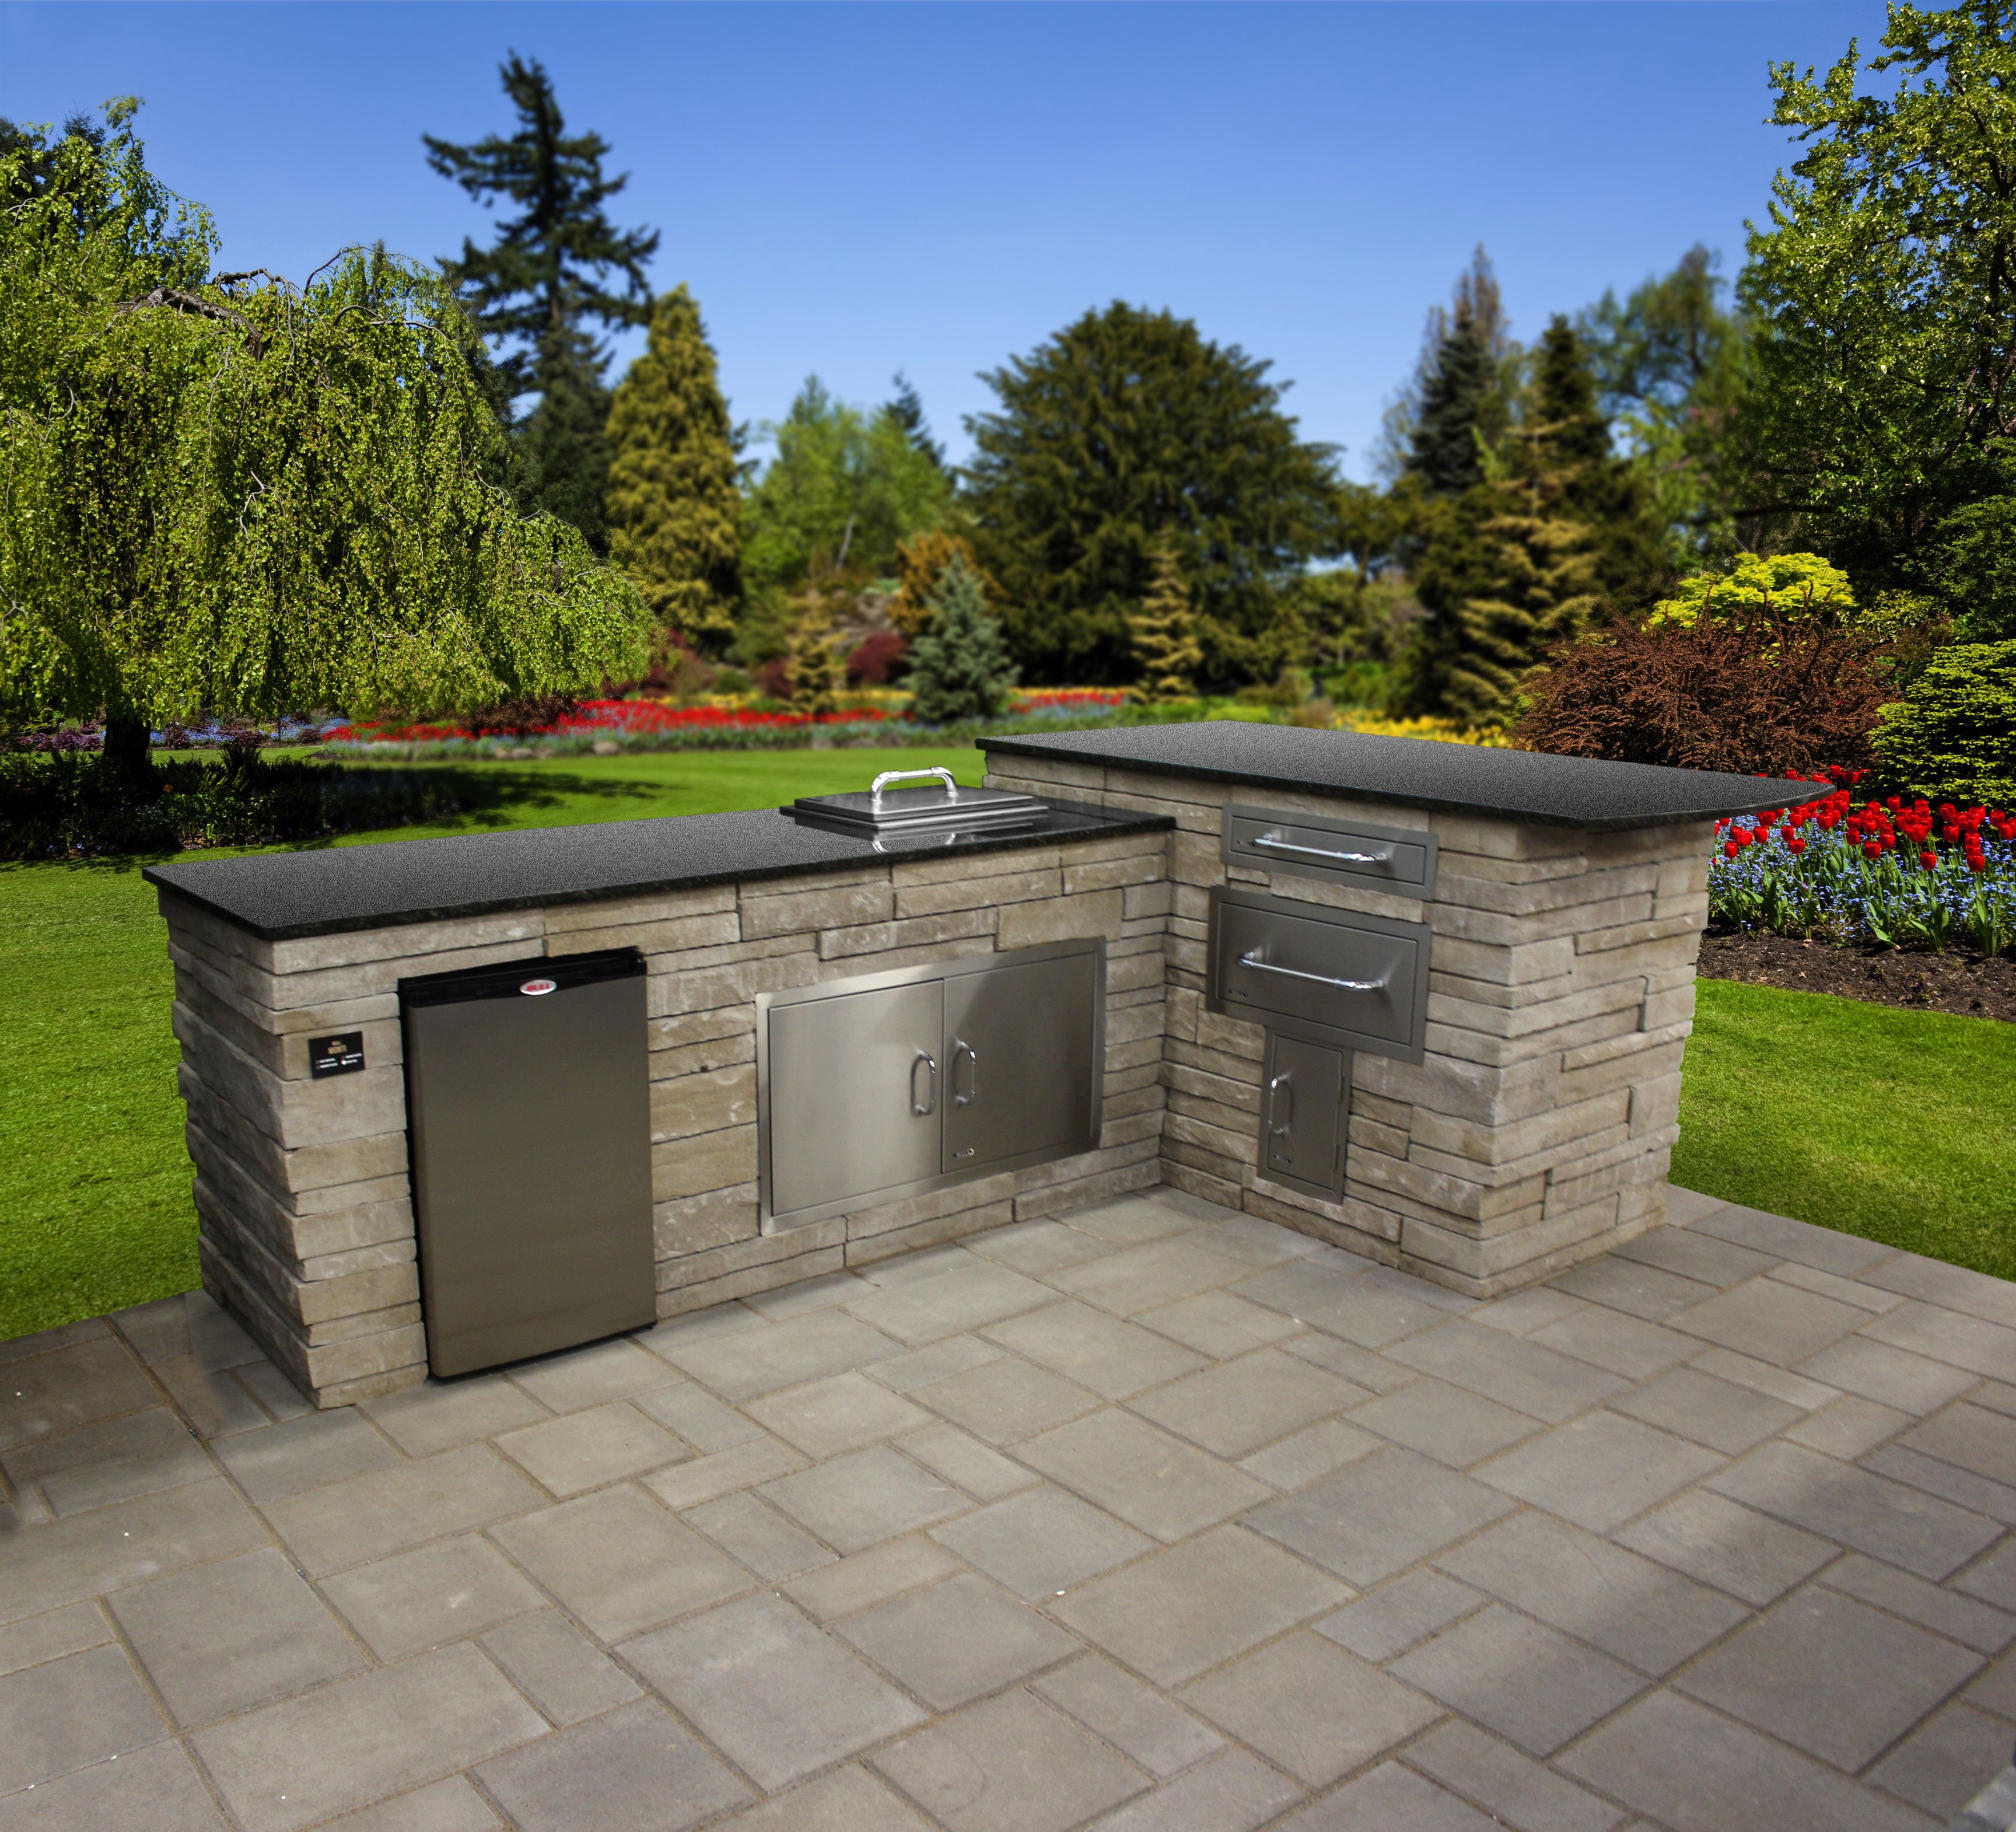 L Shaped Outdoor Kitchen Island Without The Grill This Customer Outdoor Island Features P Outdoor Kitchen Island Small Outdoor Kitchens Prefab Outdoor Kitchen